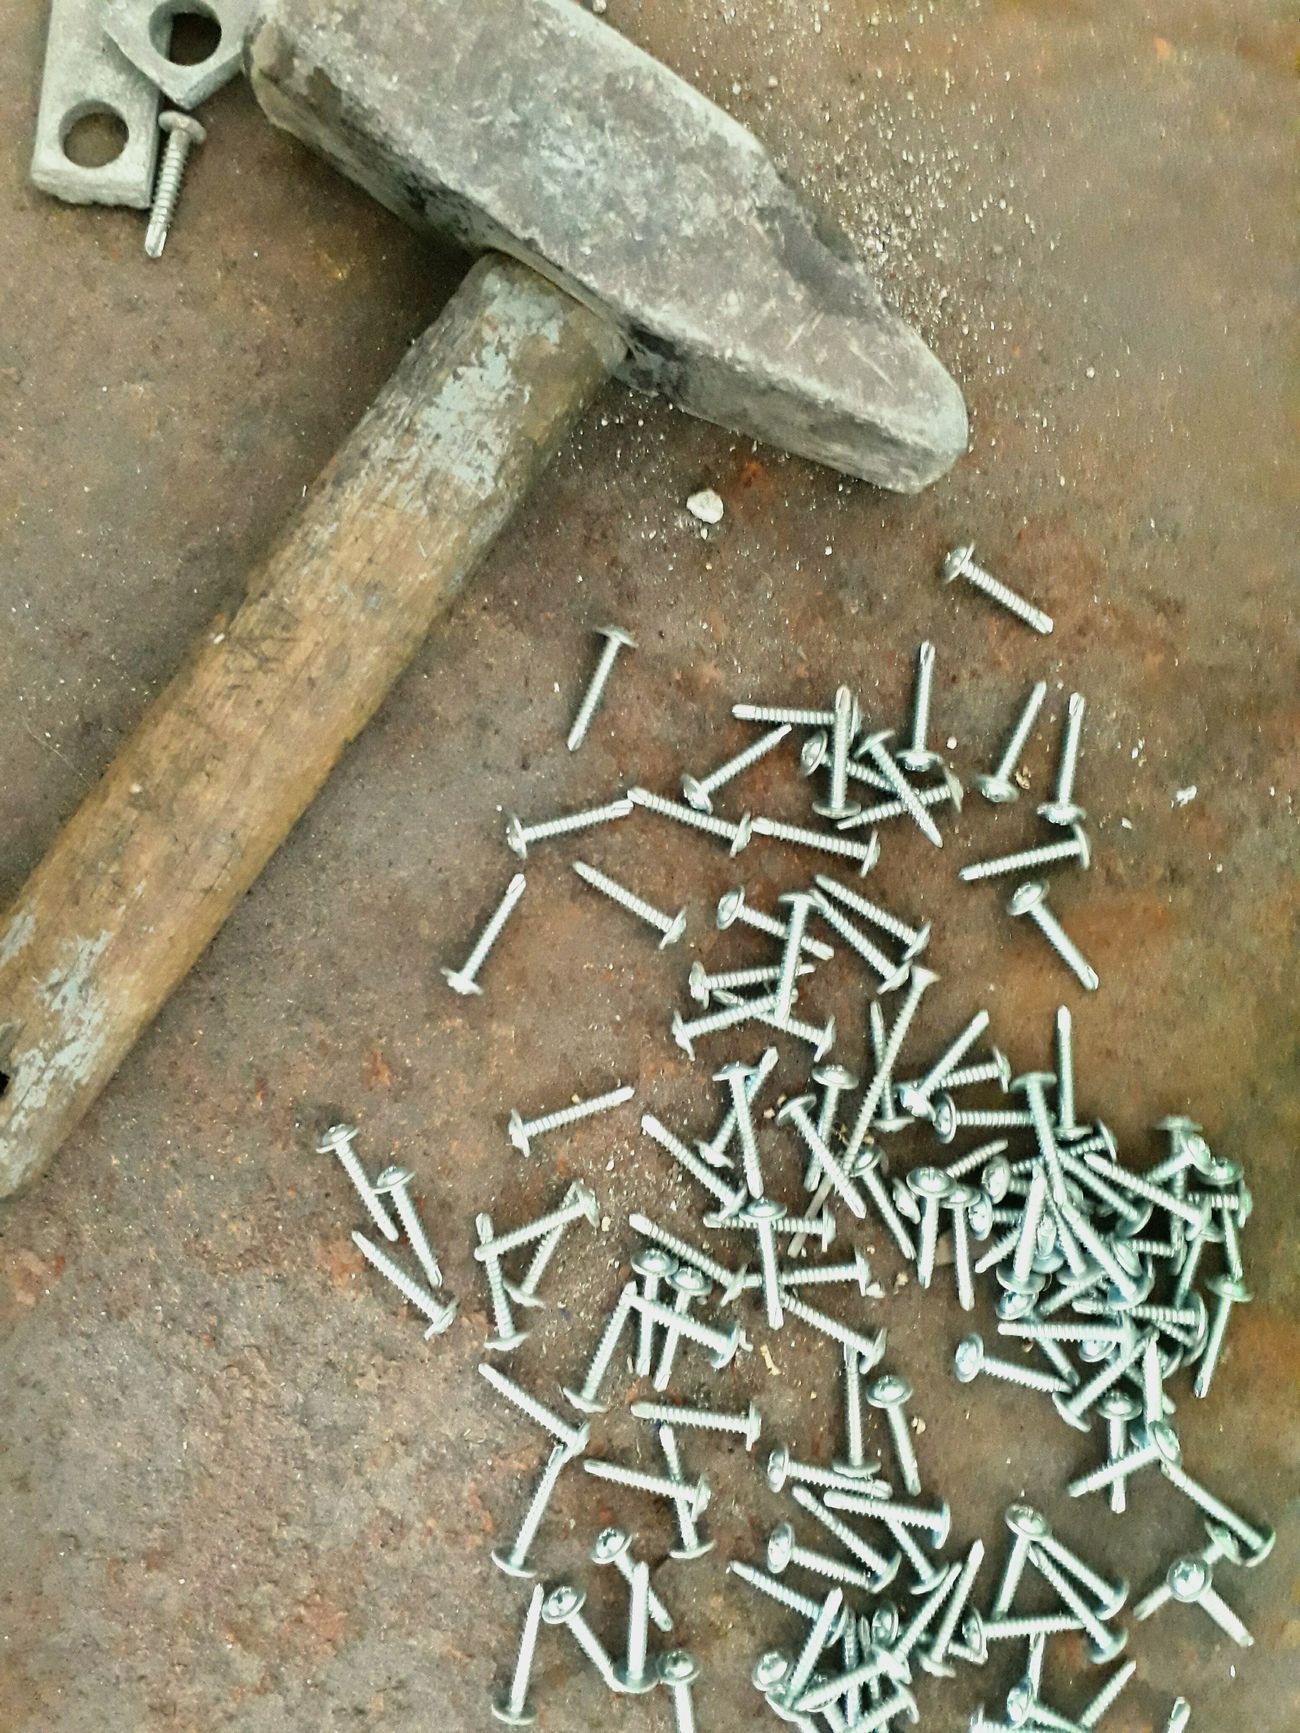 Nails Hammer Working Hard Working Hands Construction Worker And Tools Toolbox Rust Rusty Metal Manpower